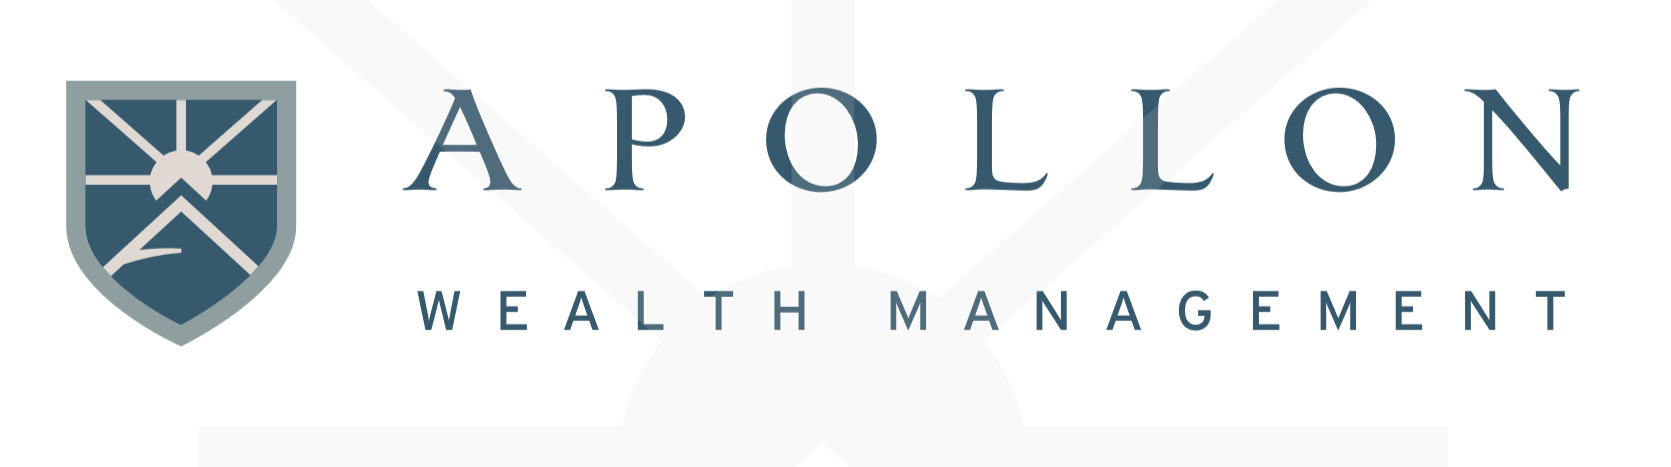 Apollon Wealth Management